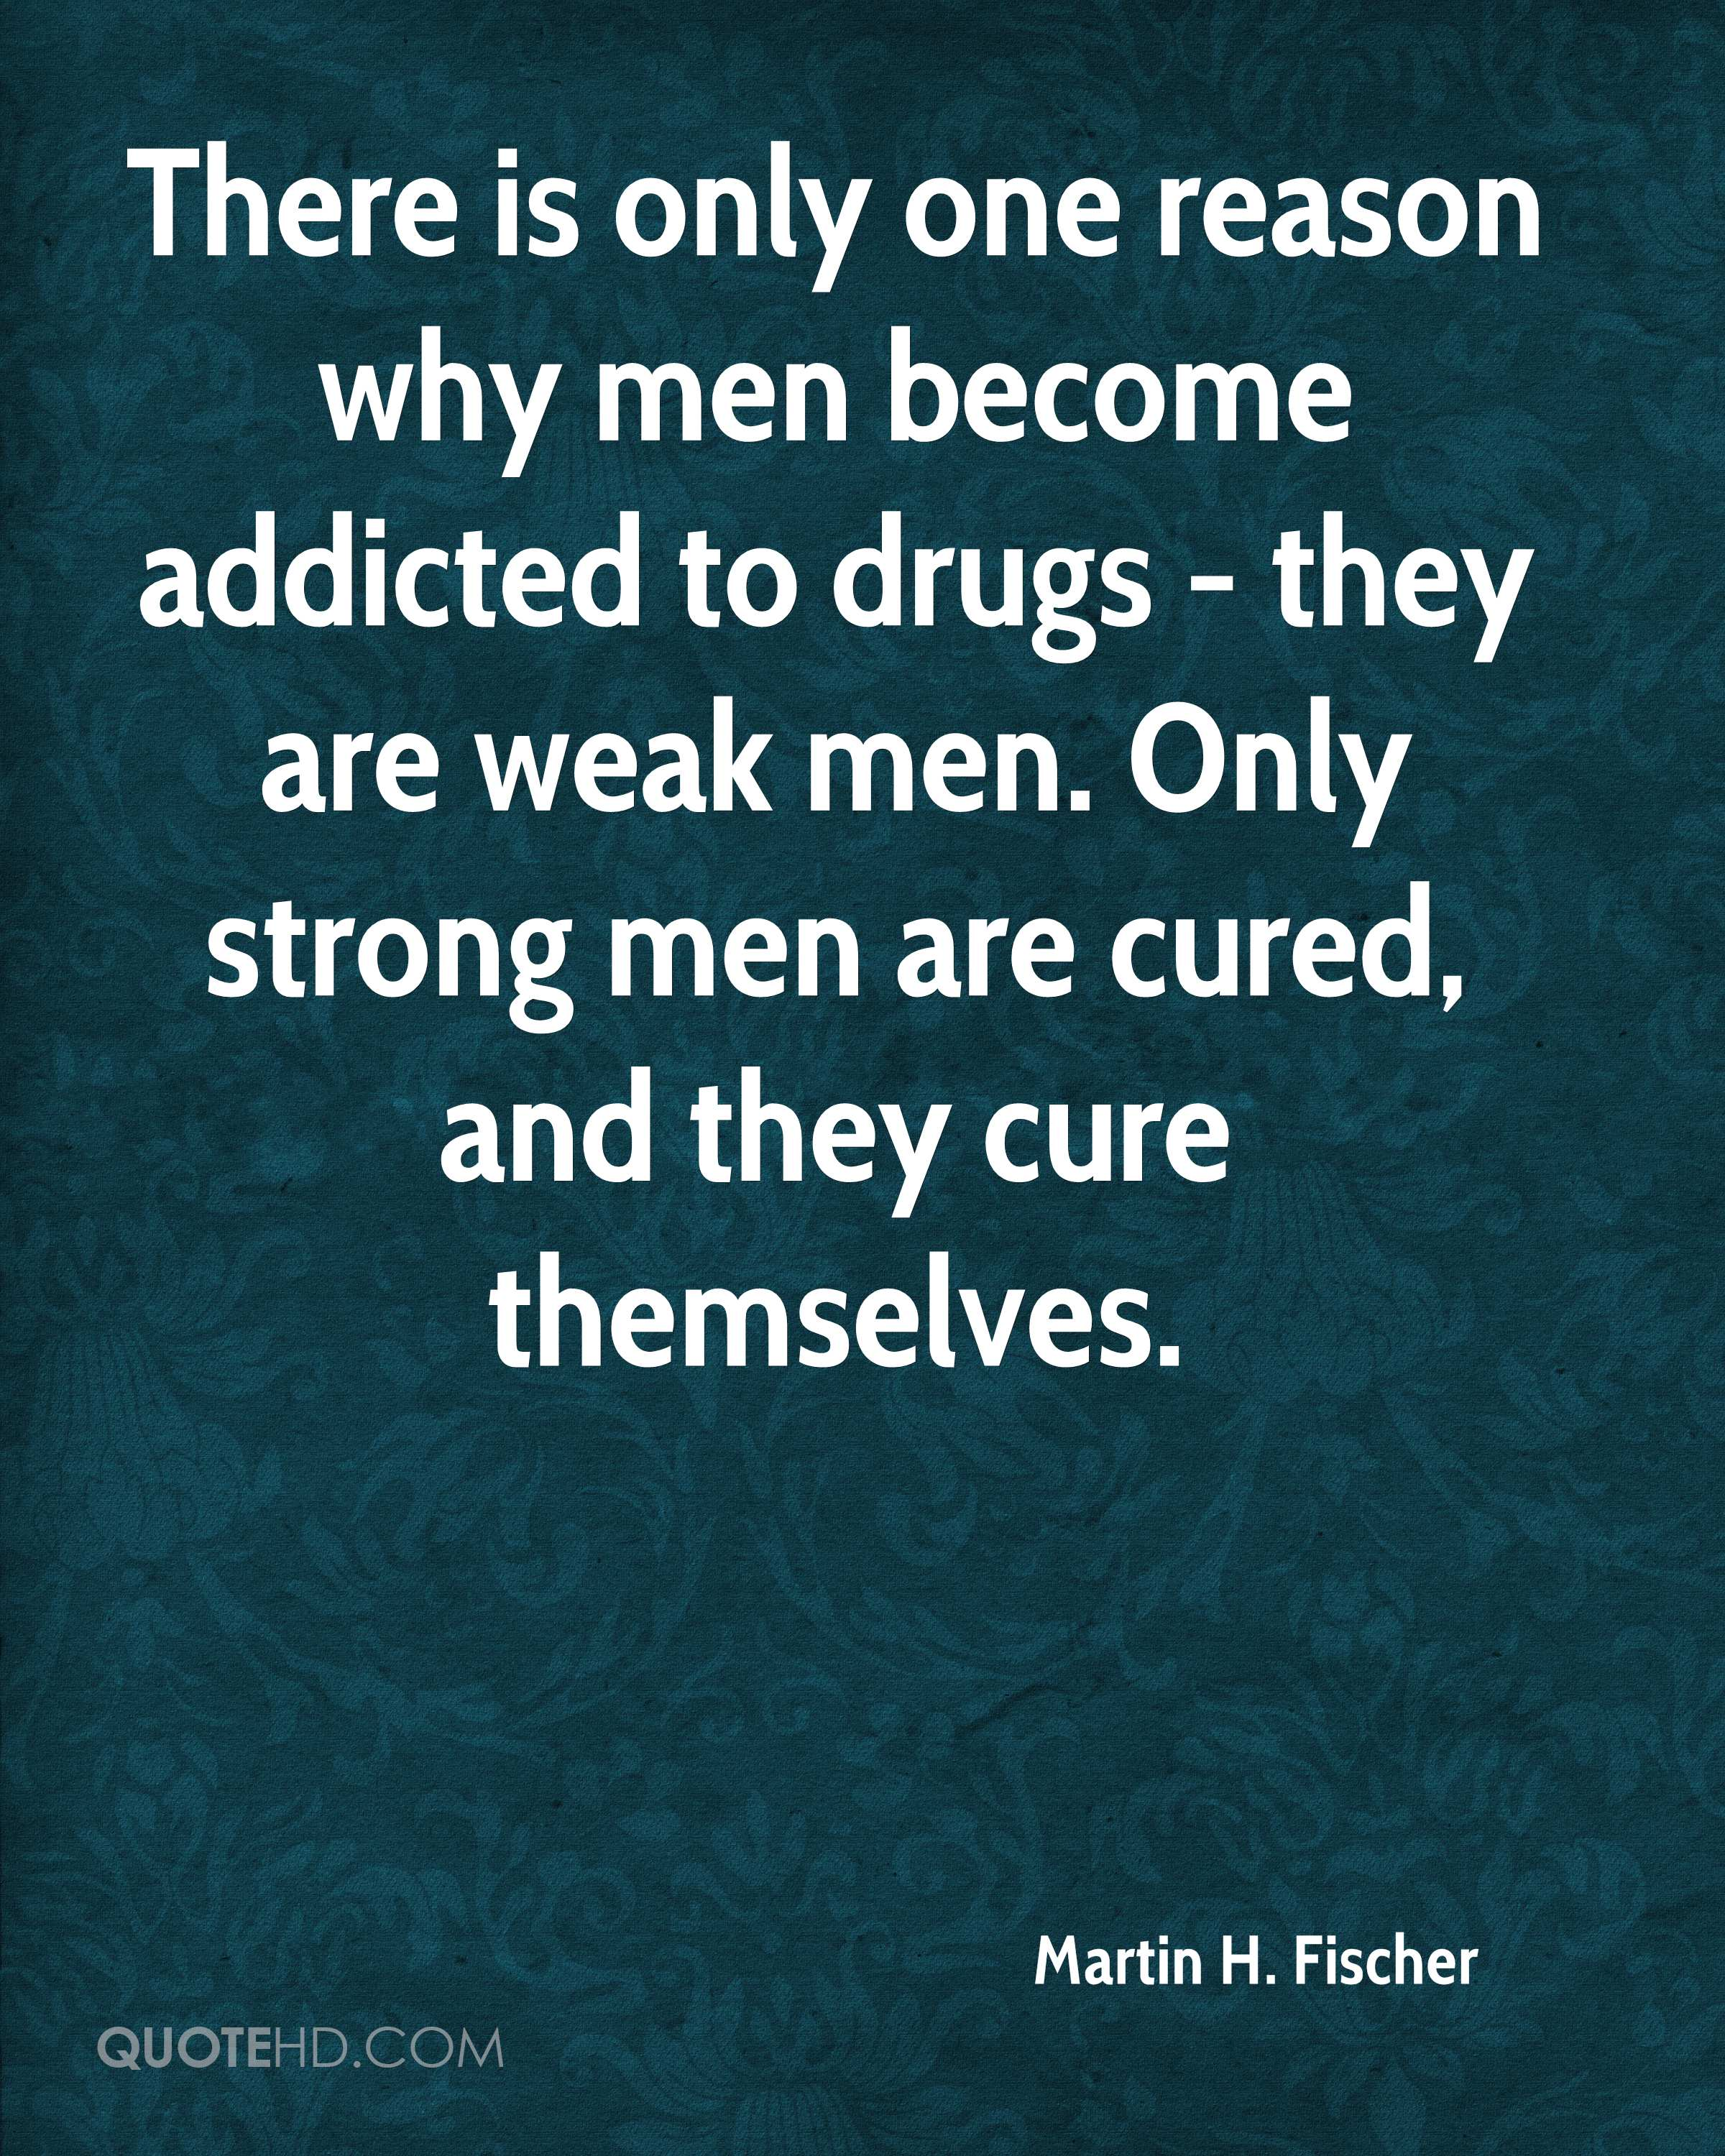 There is only one reason why men become addicted to drugs - they are weak men. Only strong men are cured, and they cure themselves.